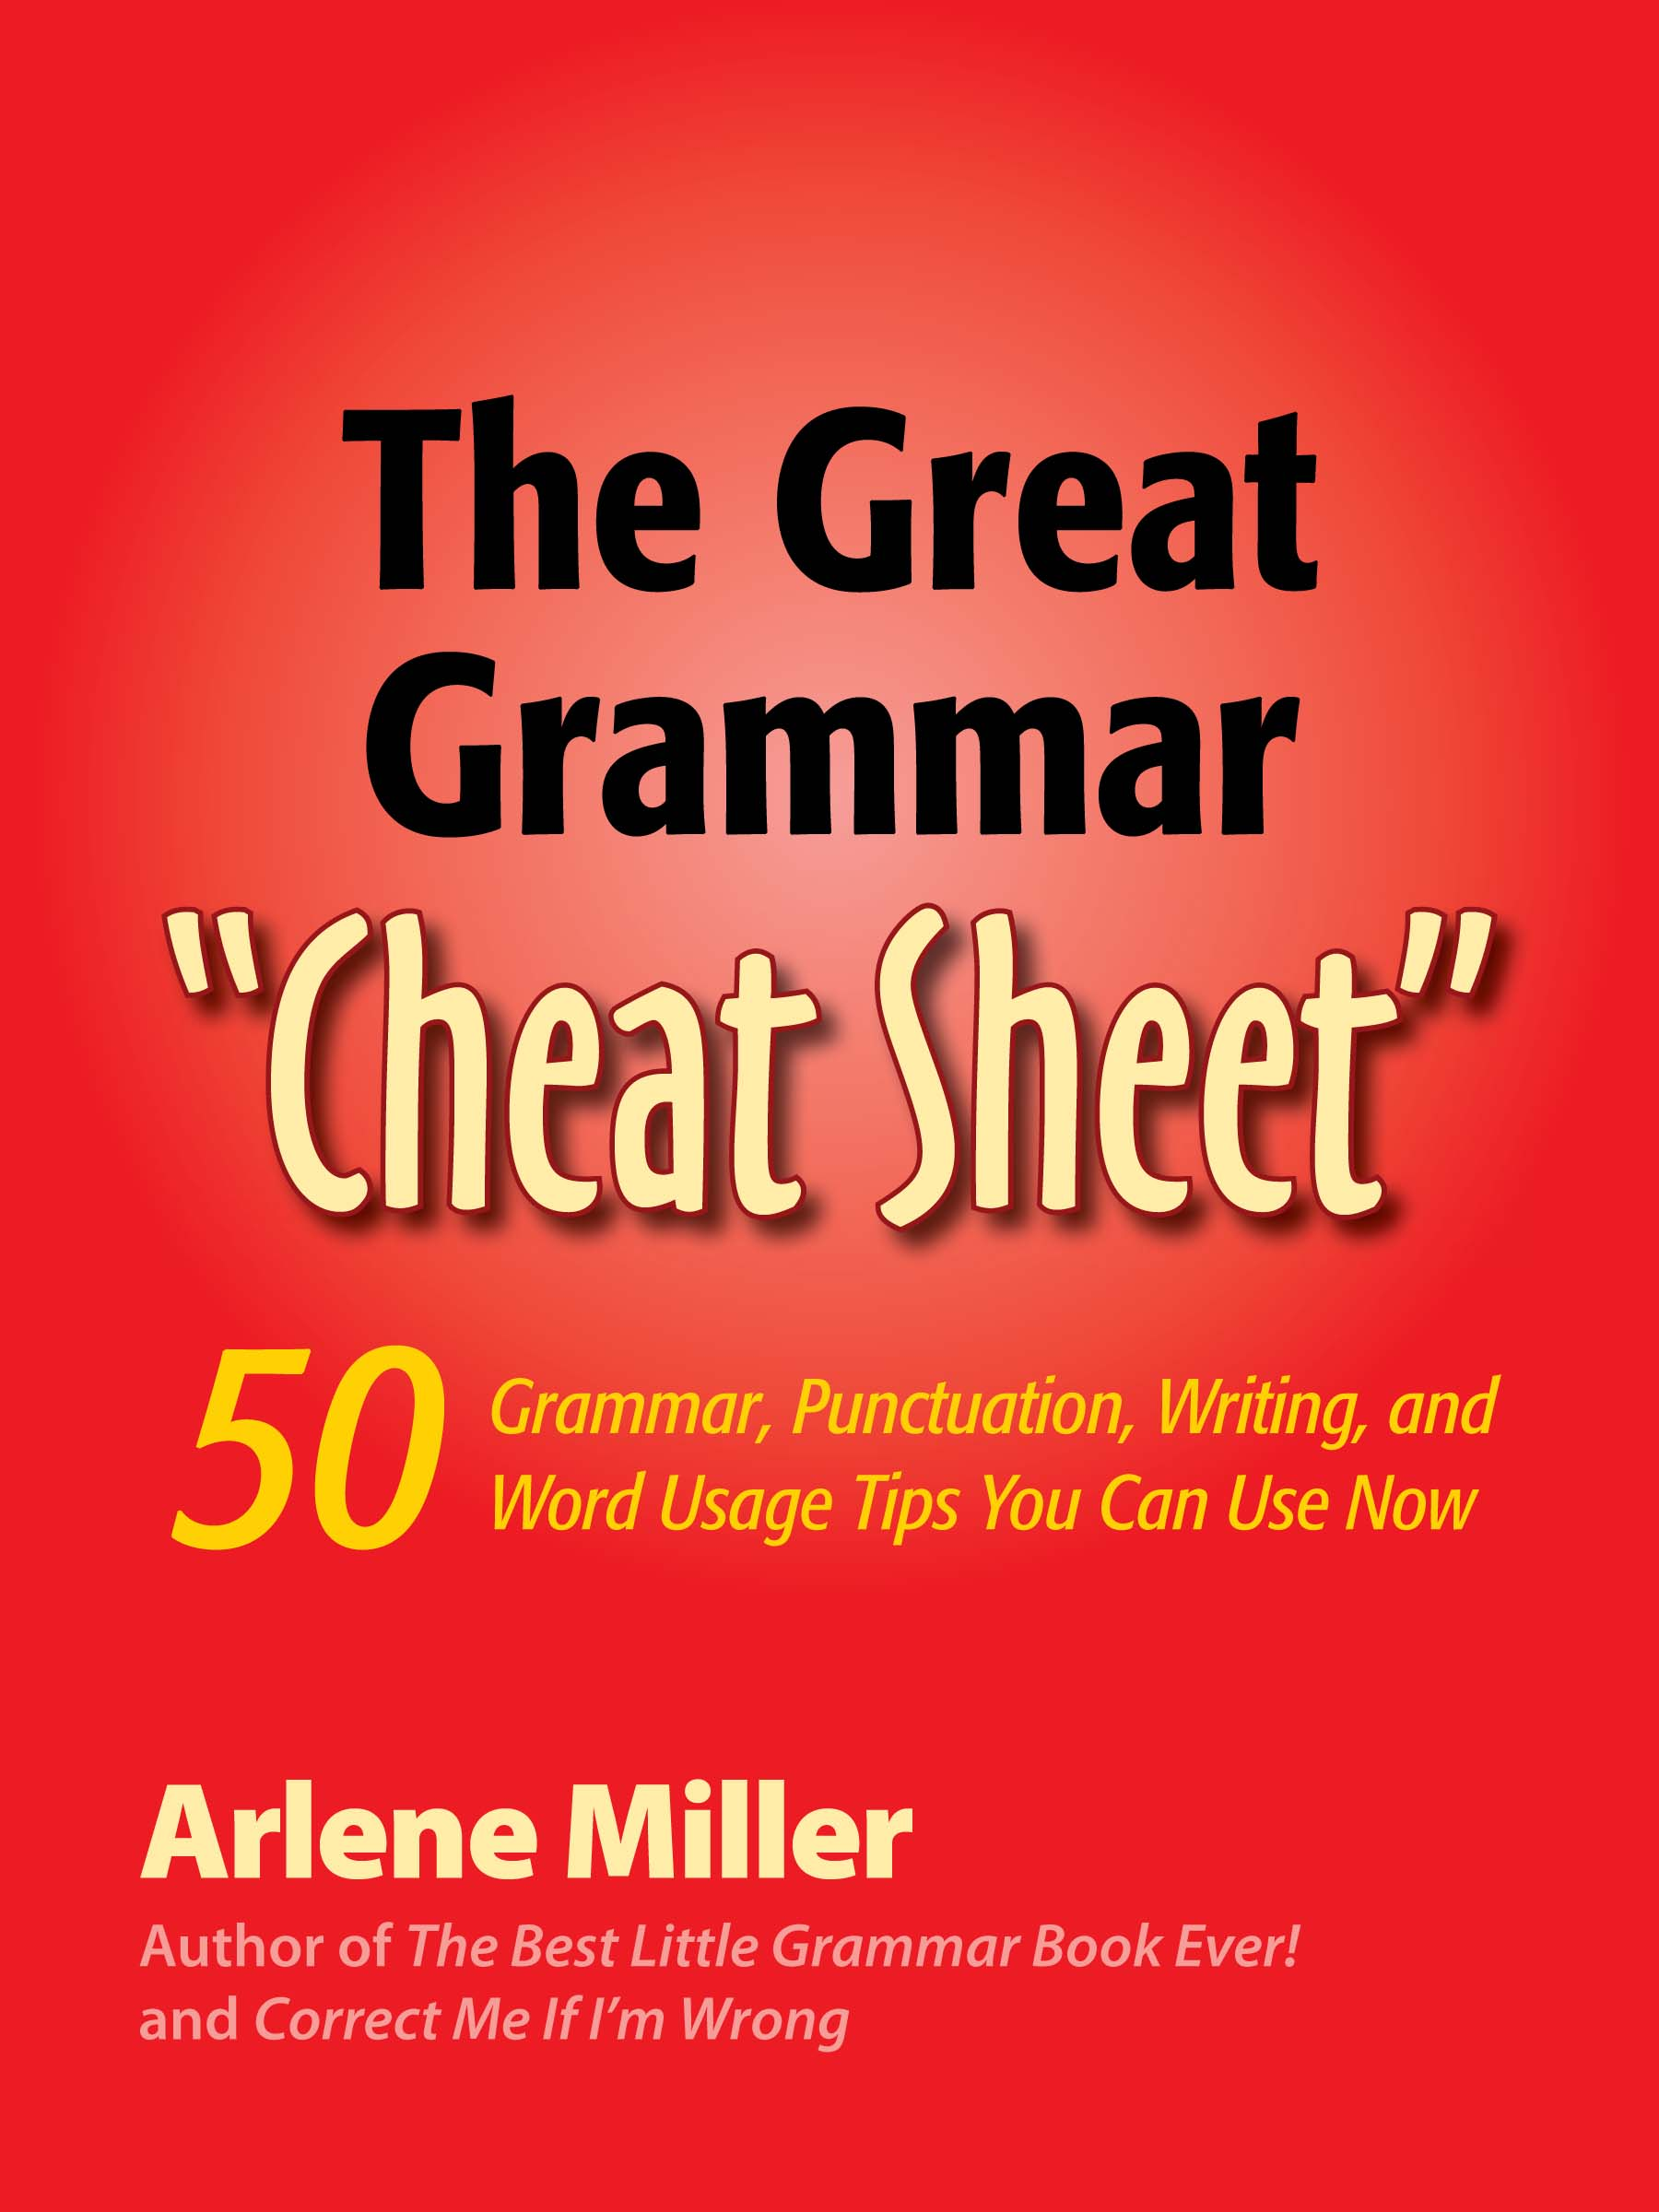 The Great Grammar Cheat Sheet